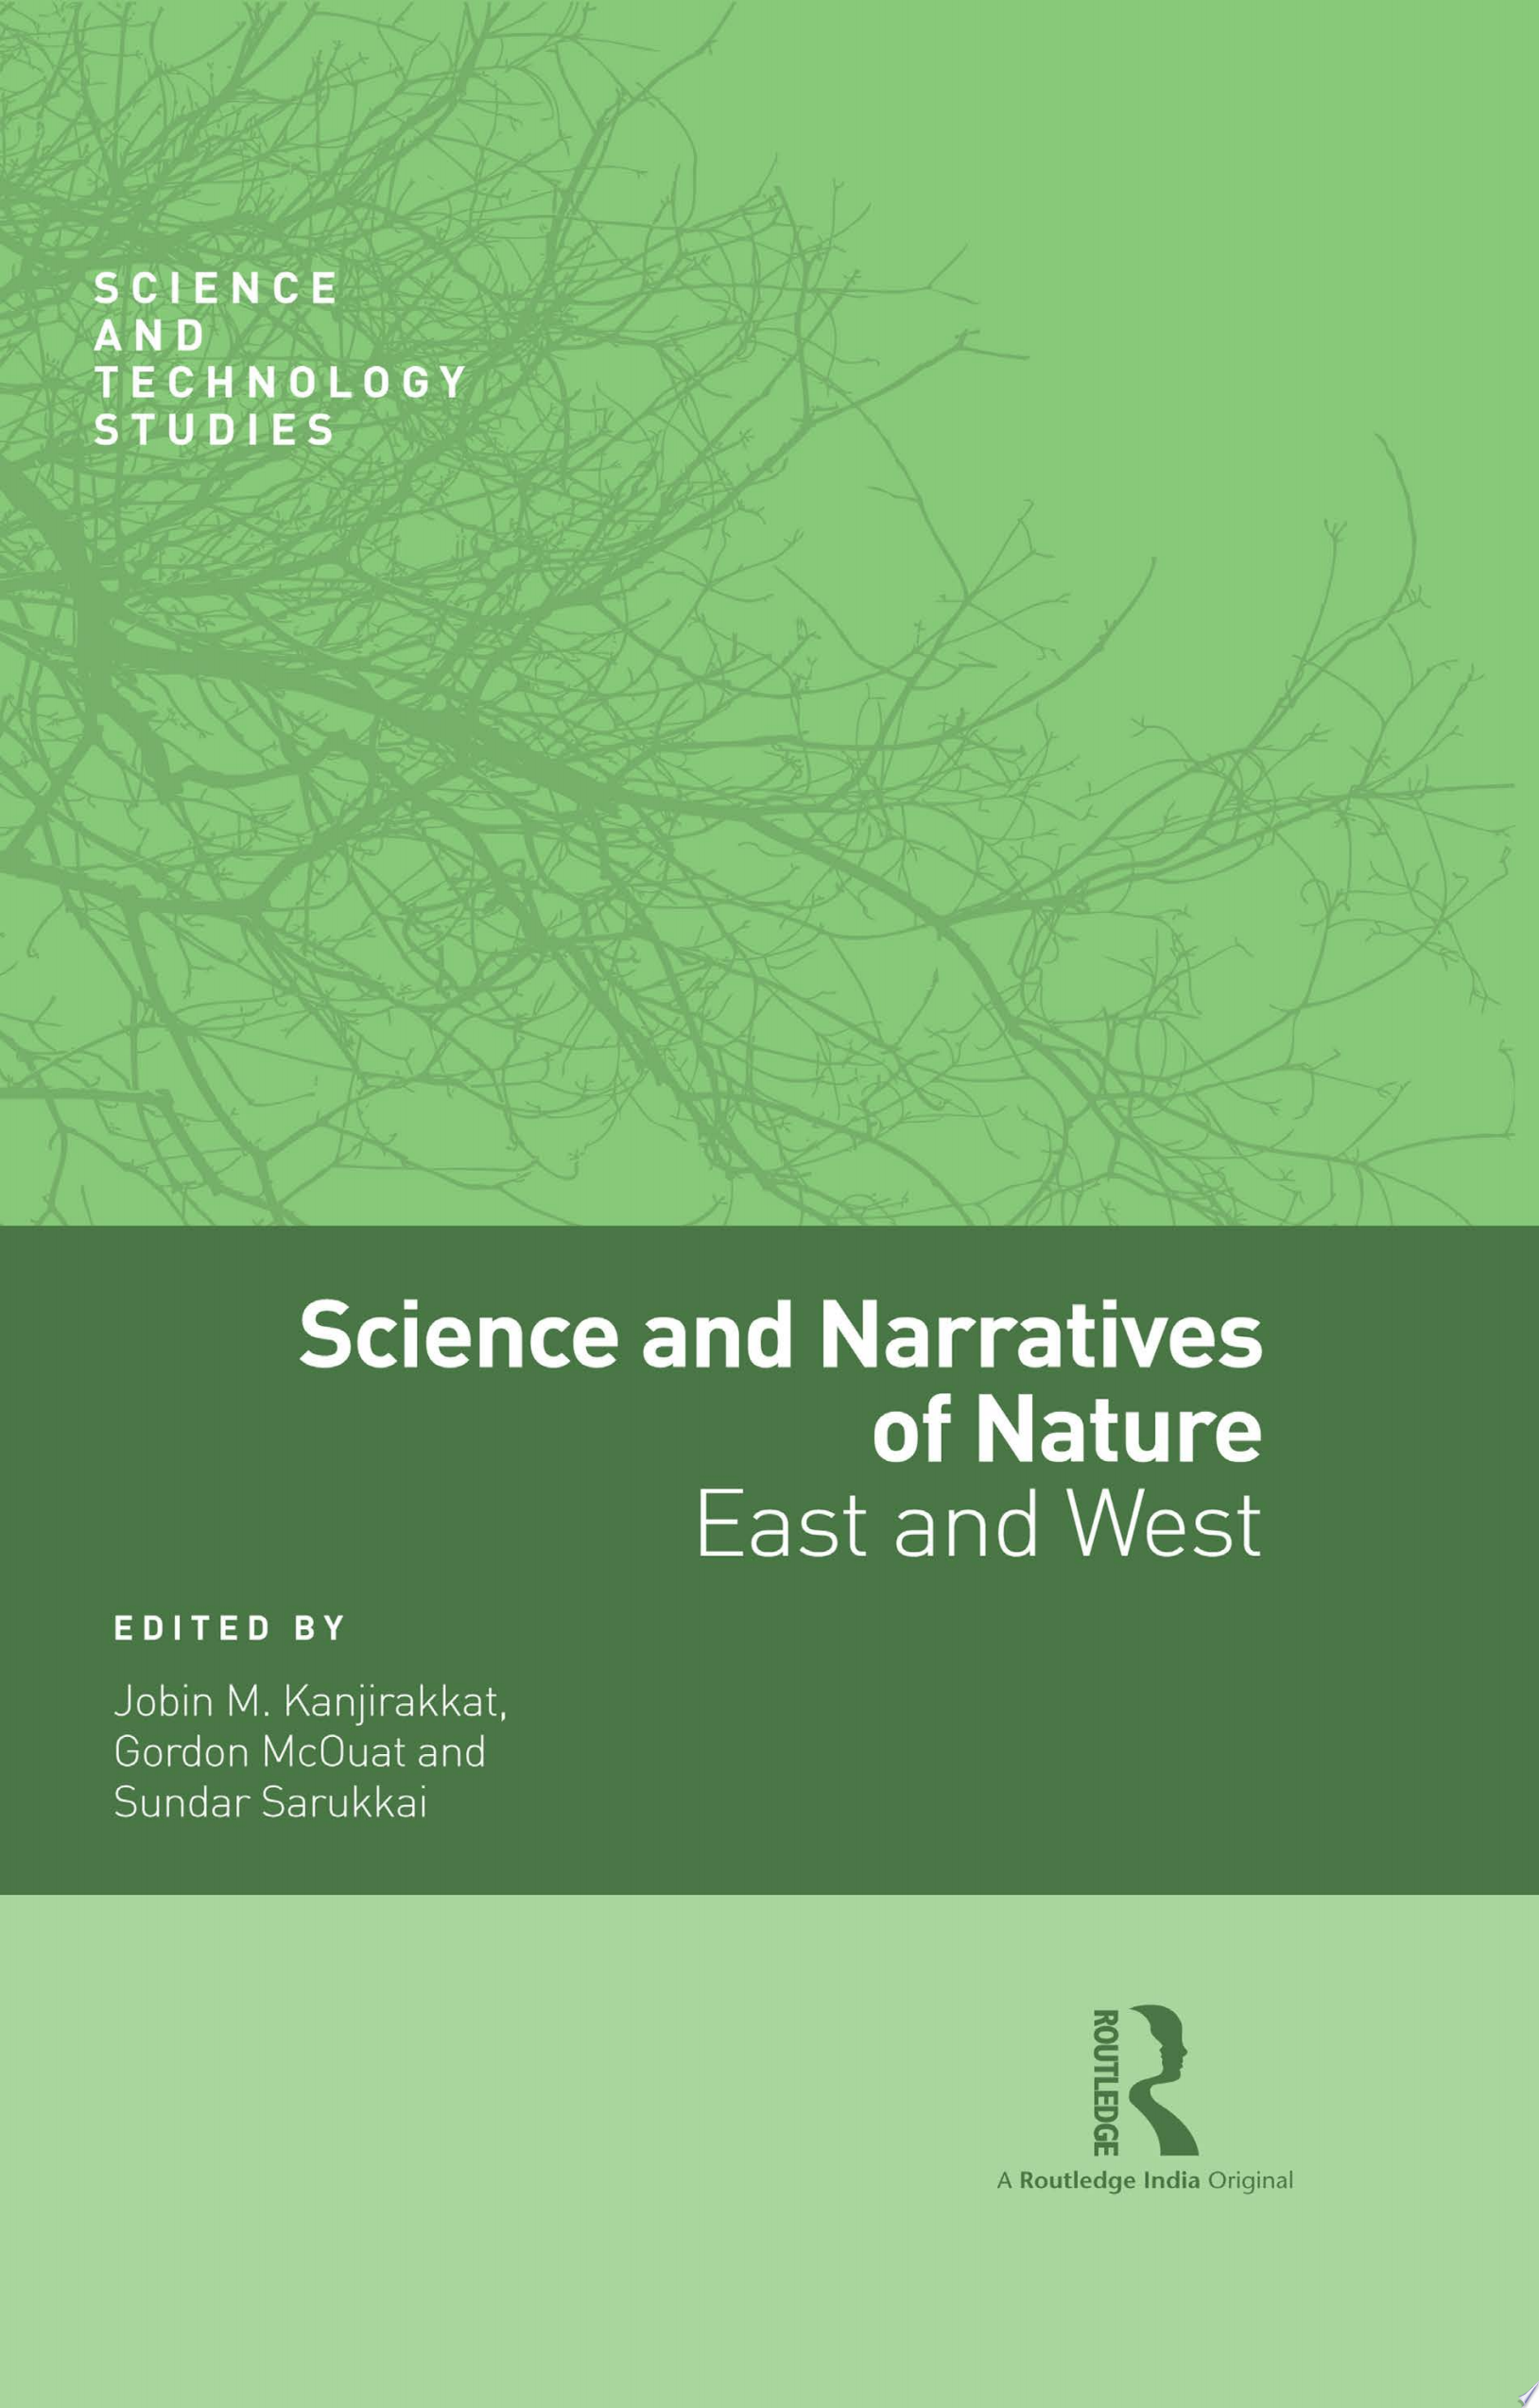 Science and Narratives of Nature